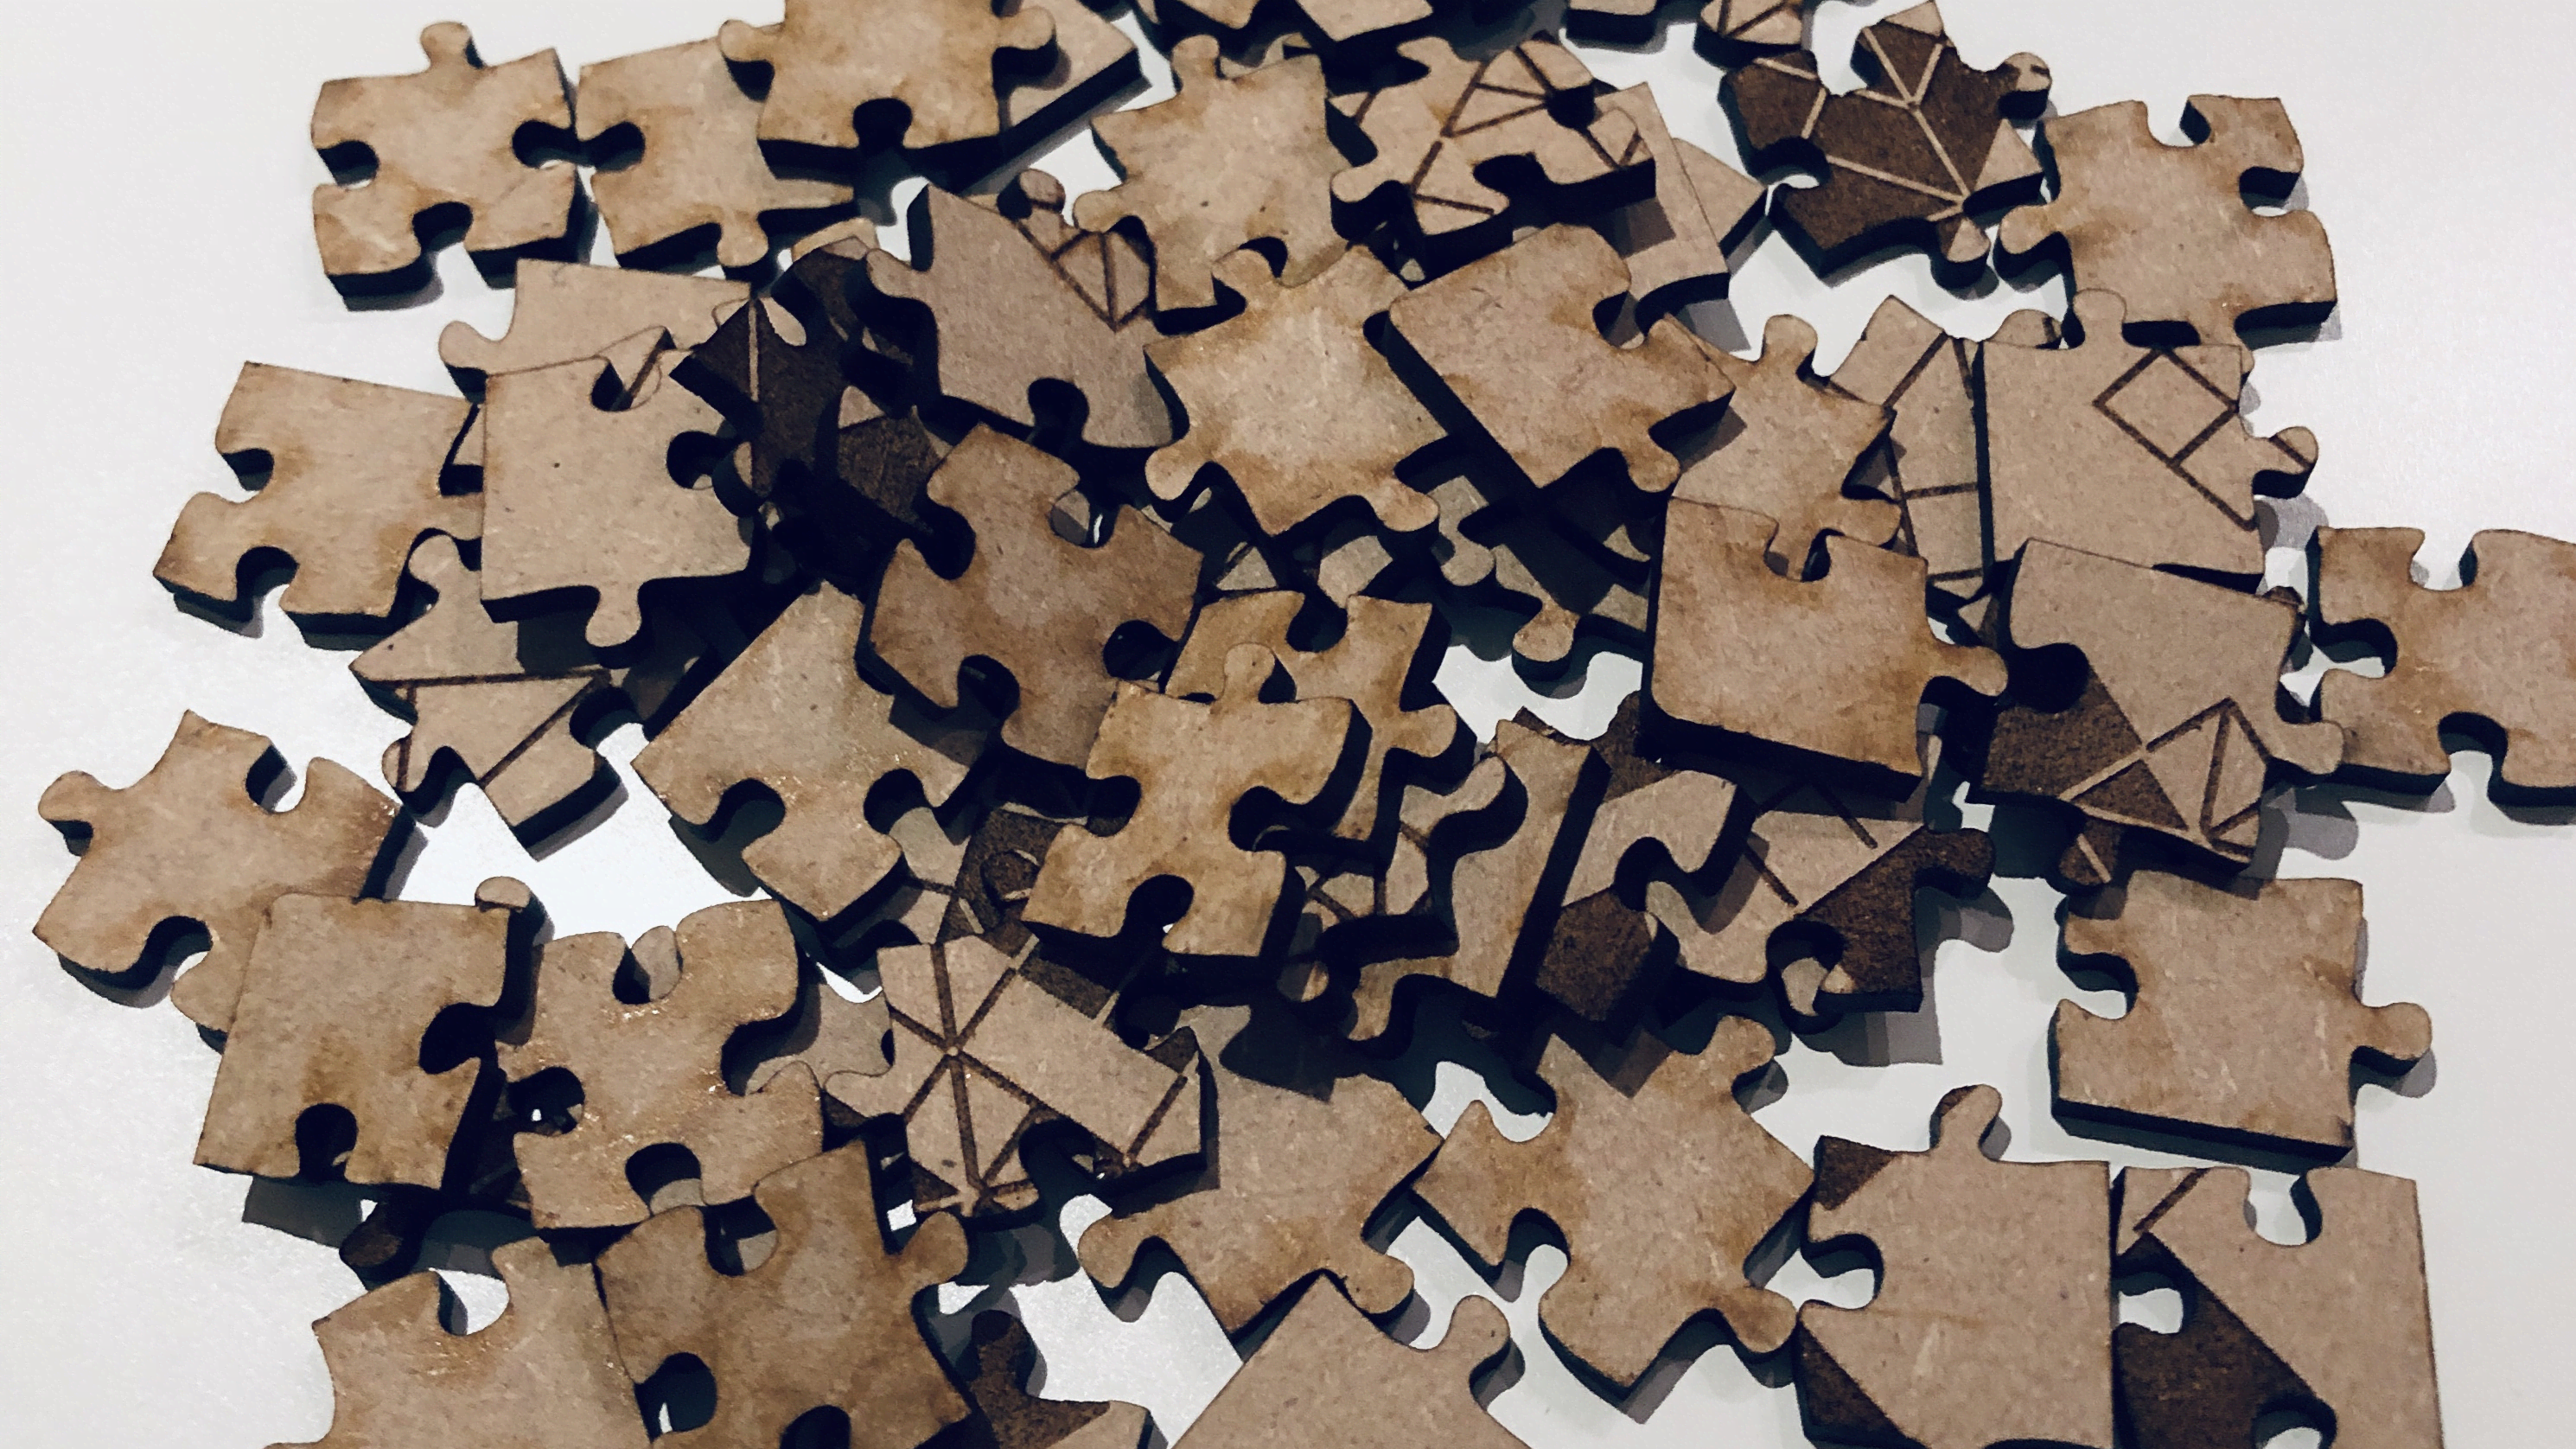 A photo of the mdf jigsaw pieces